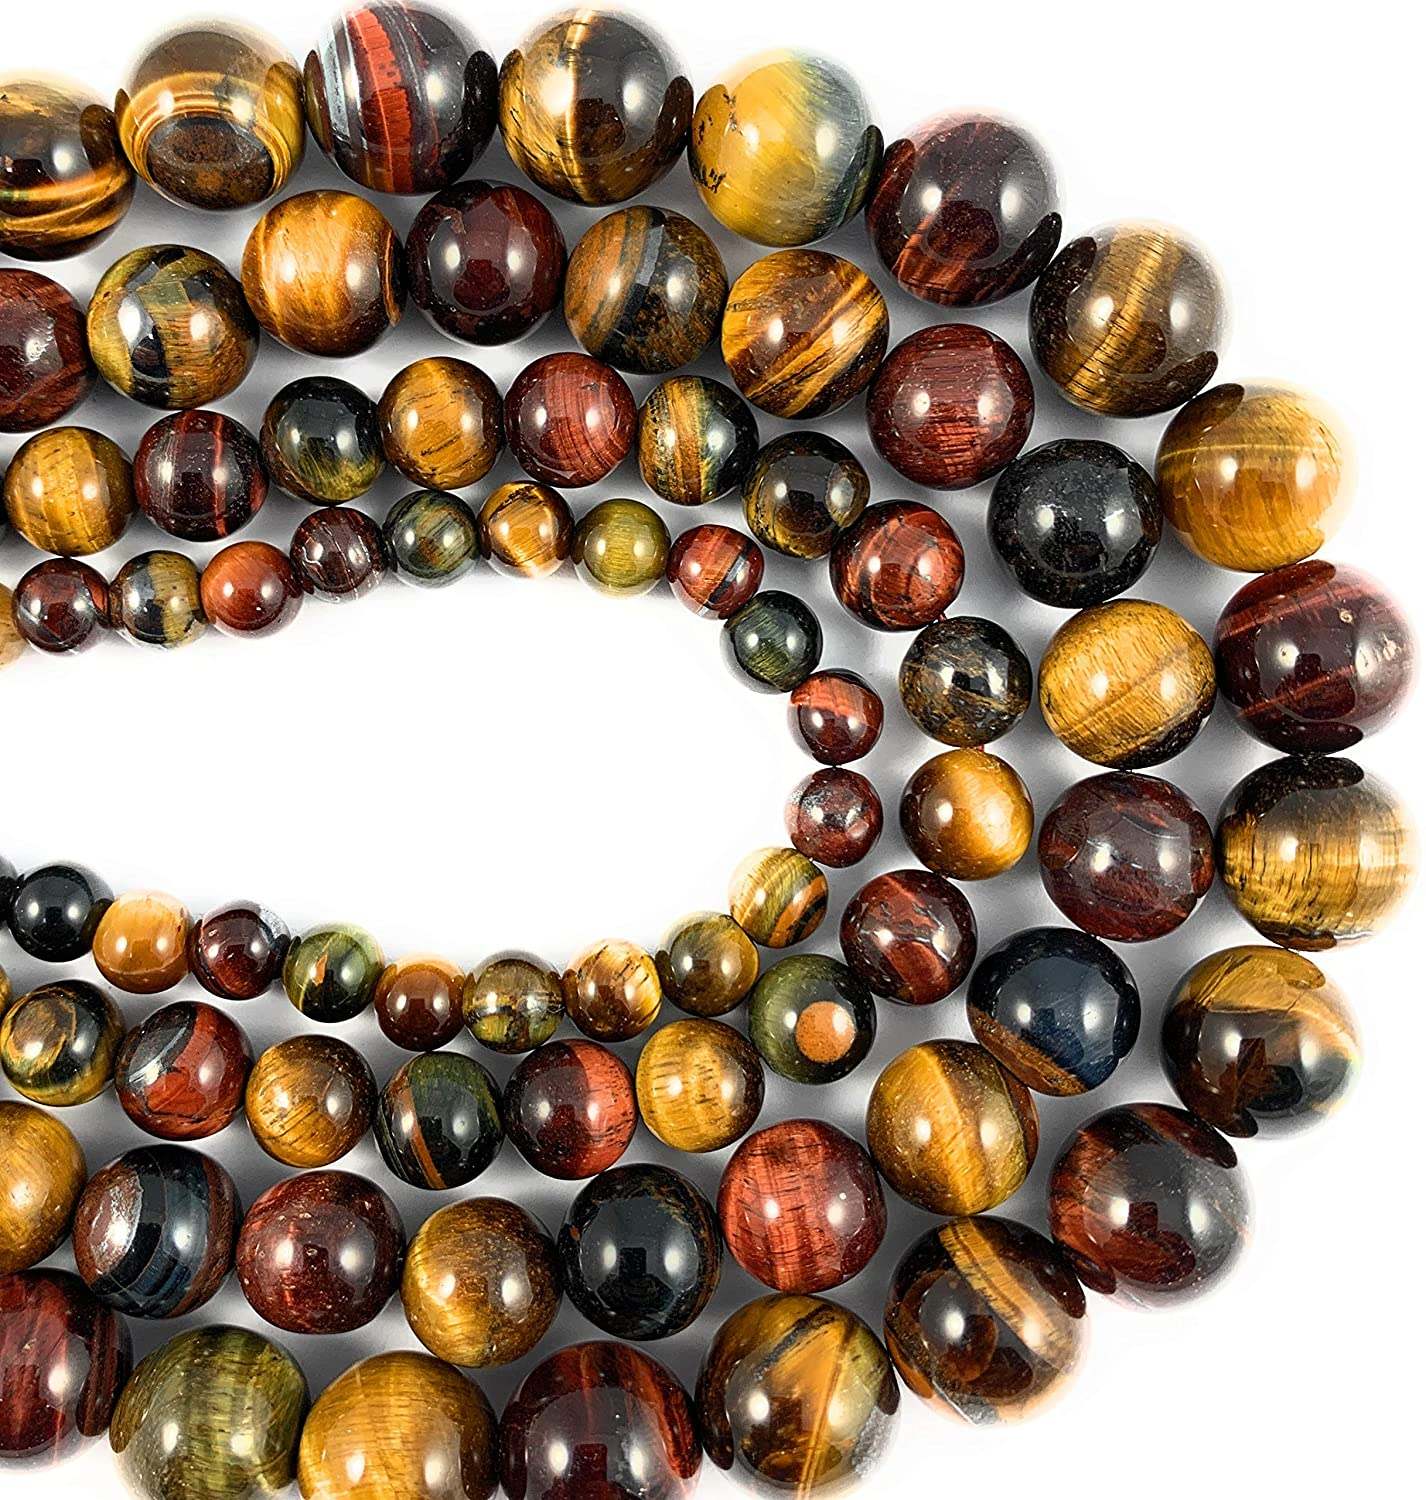 Beadalgo - 4 mm Natural Multi Color Tiger Eye Gemstone Round Beads for Jewelry Making - 15.5 inch Strand.